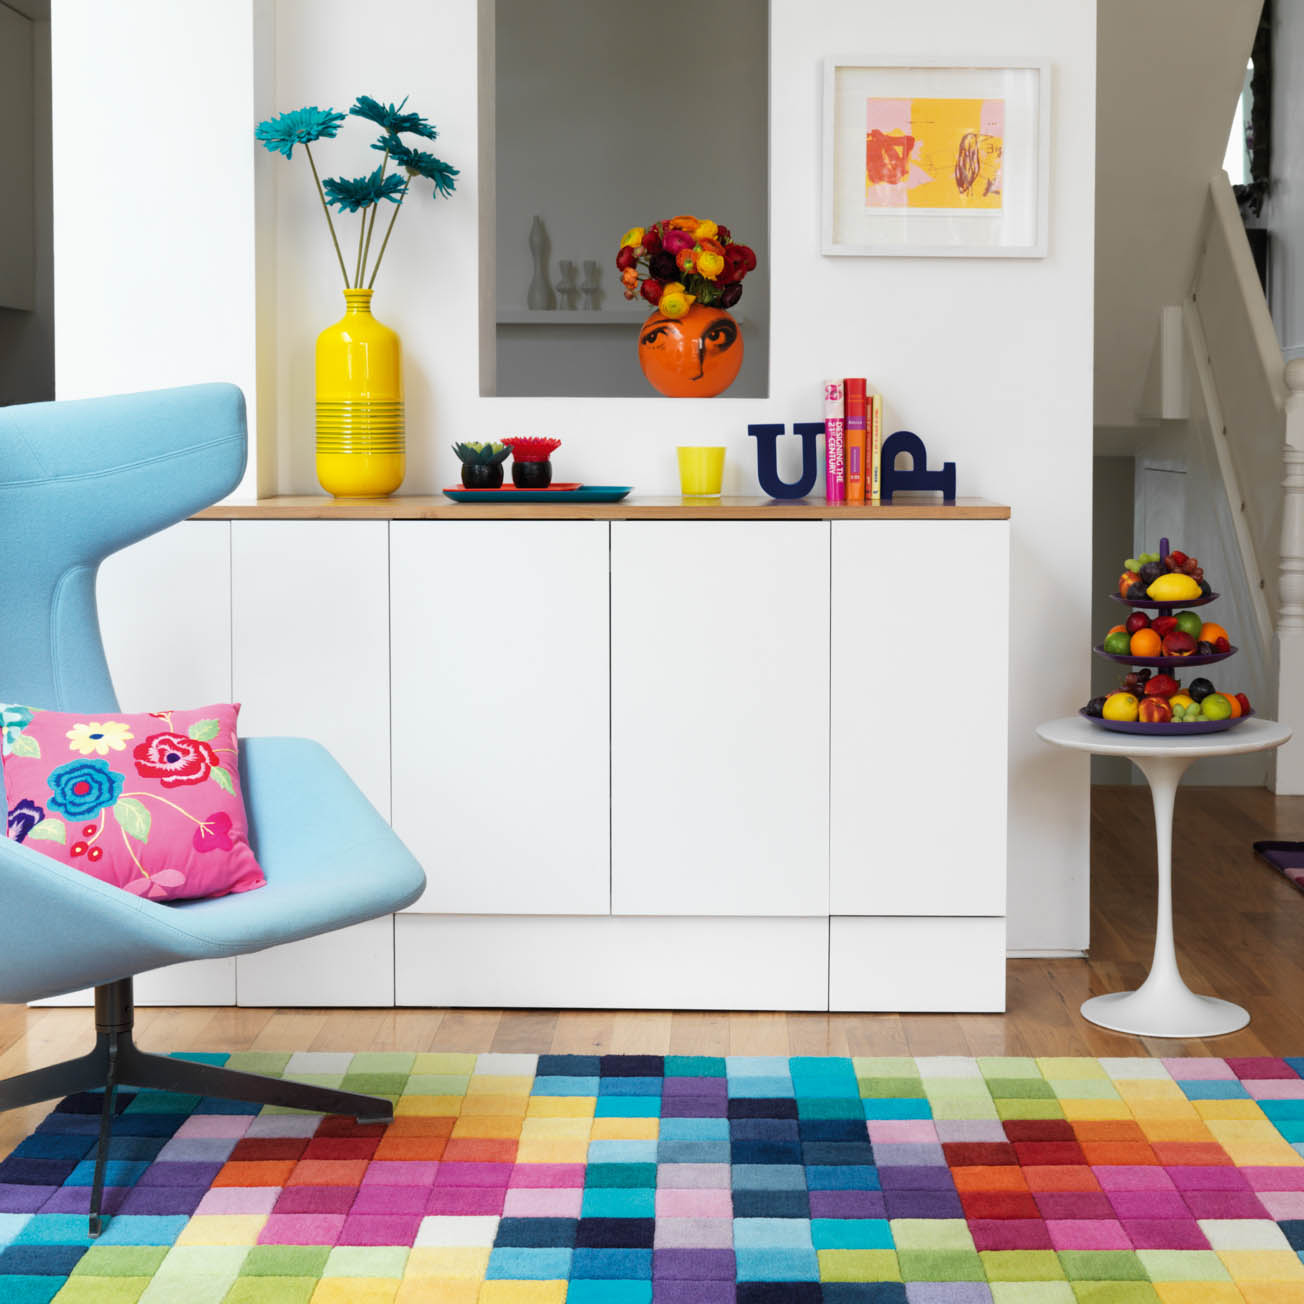 Top 10 Most Important Interior Design Principles - The Rug Seller Blog